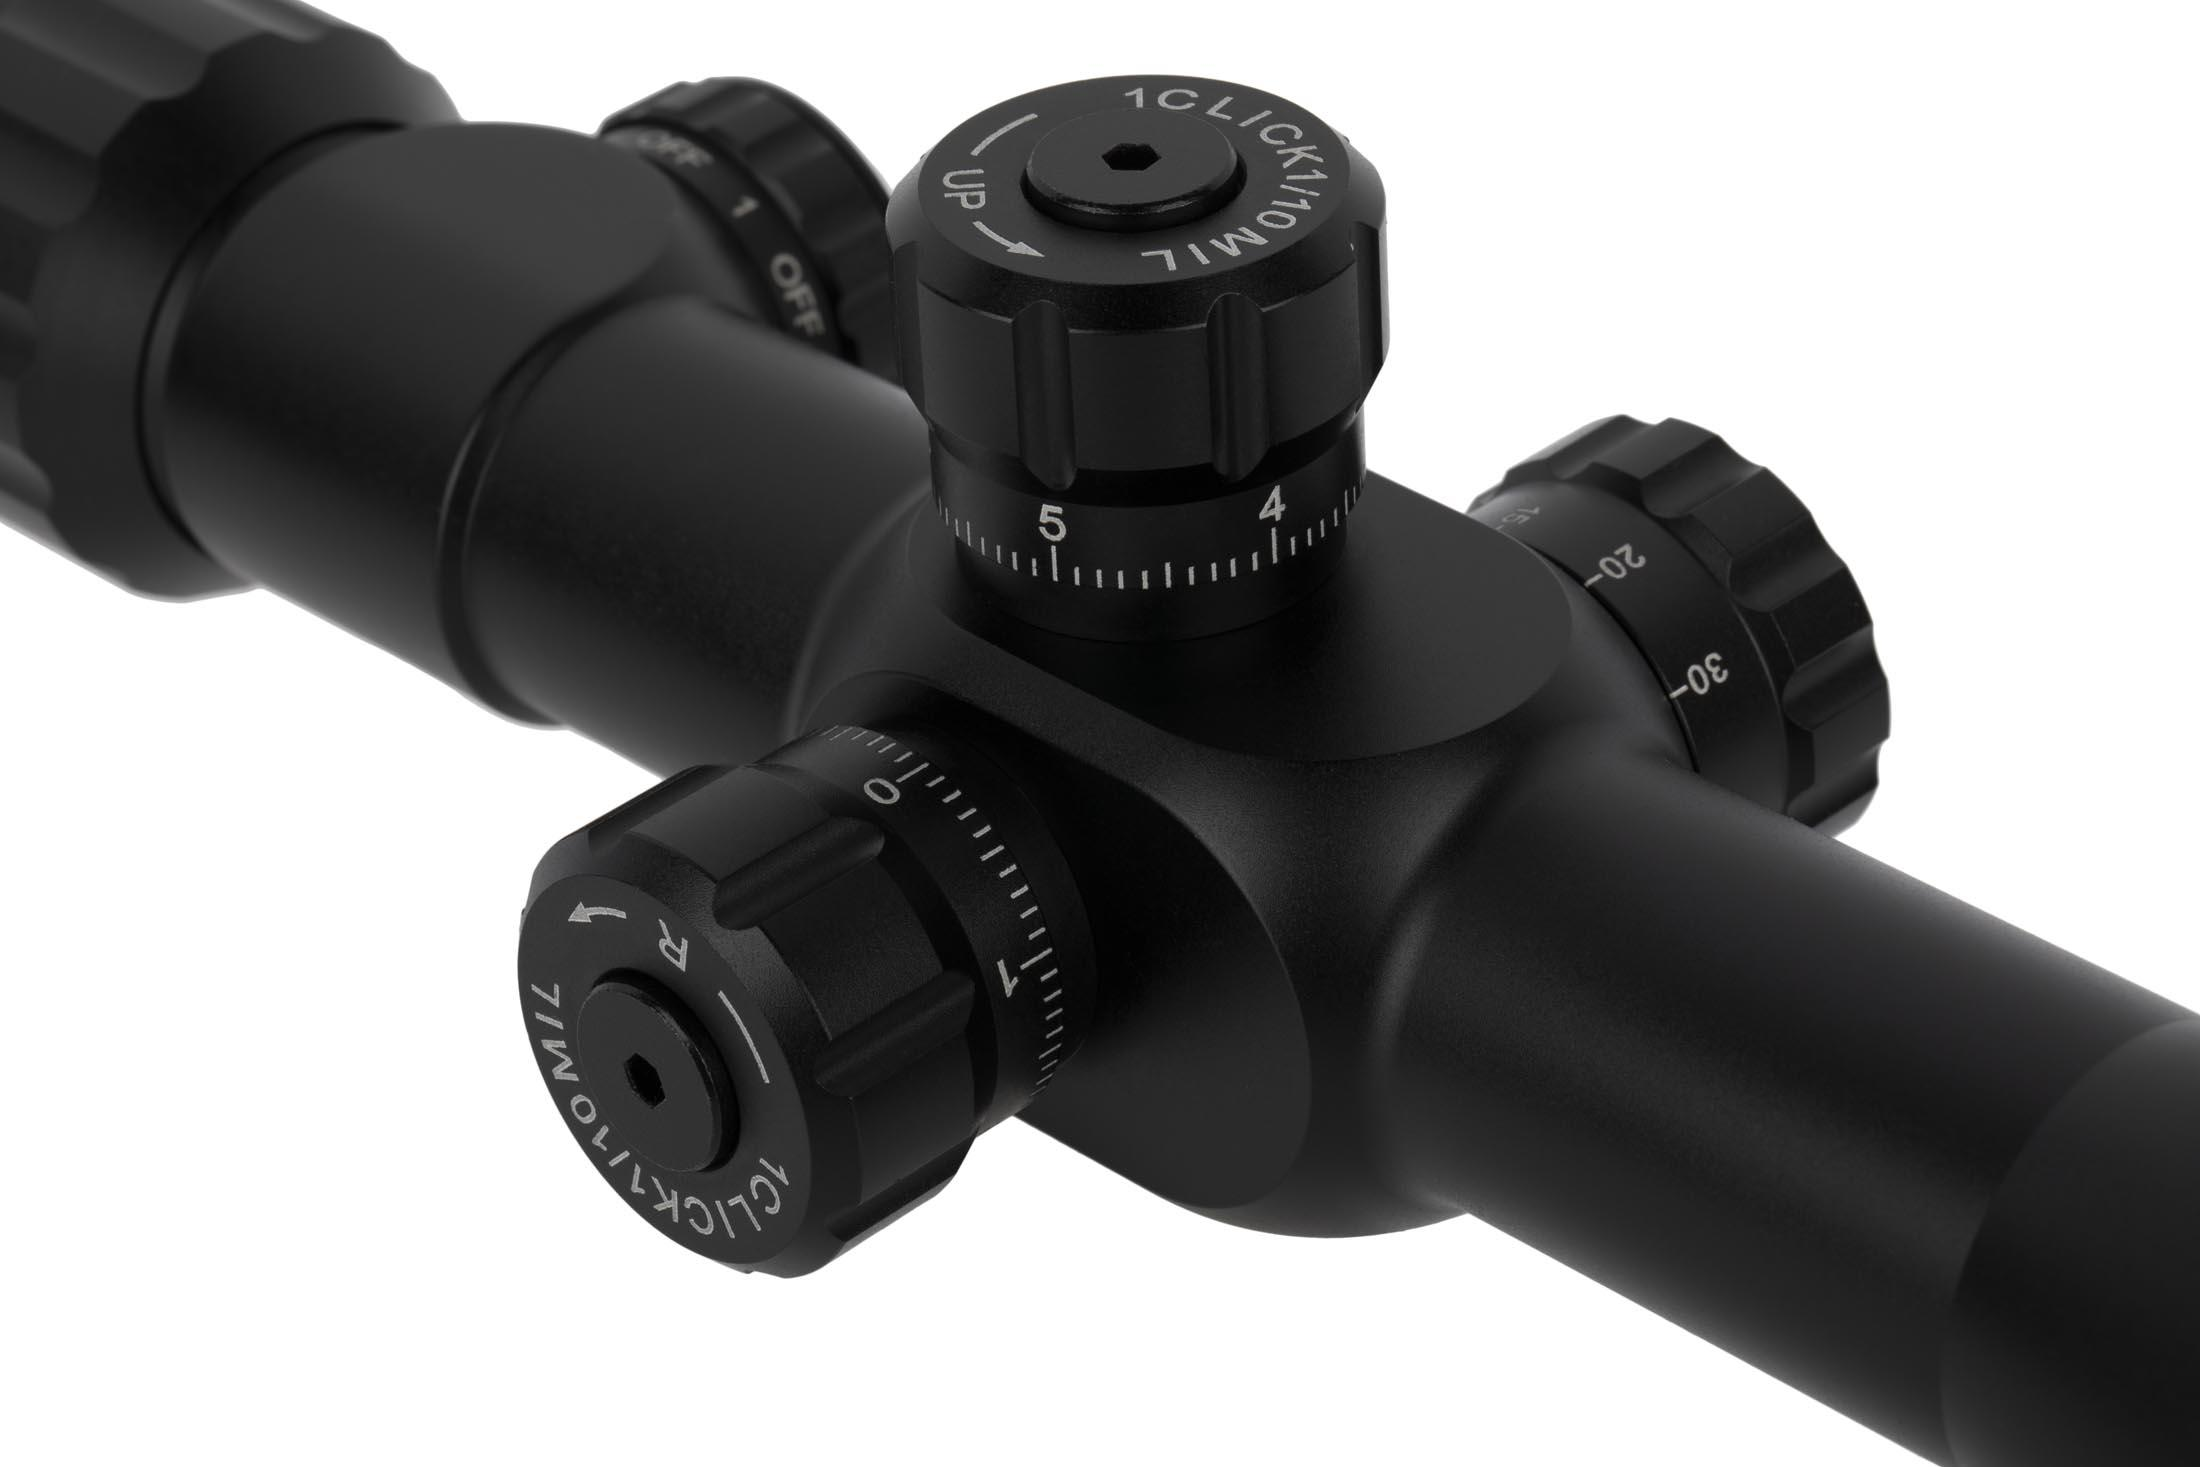 SLx3.5 4-14x44mm first focal plane rifle scope with R-Grid 2B reticle features precise, tactile, and audible 0.1 MIL click adjustments.